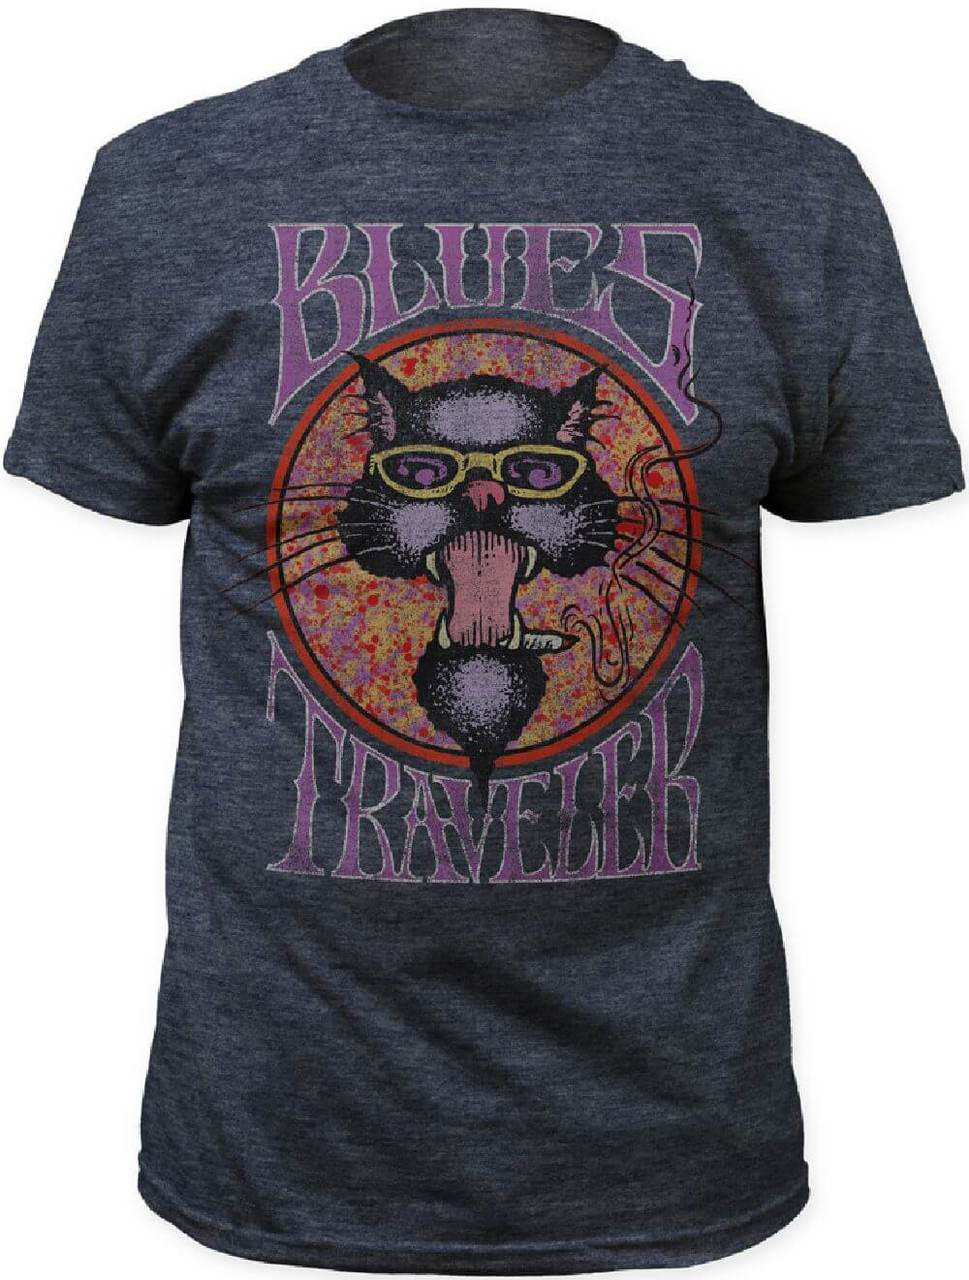 Blues traveler cat logo men 39 s gray vintage t shirt for Old logo t shirts